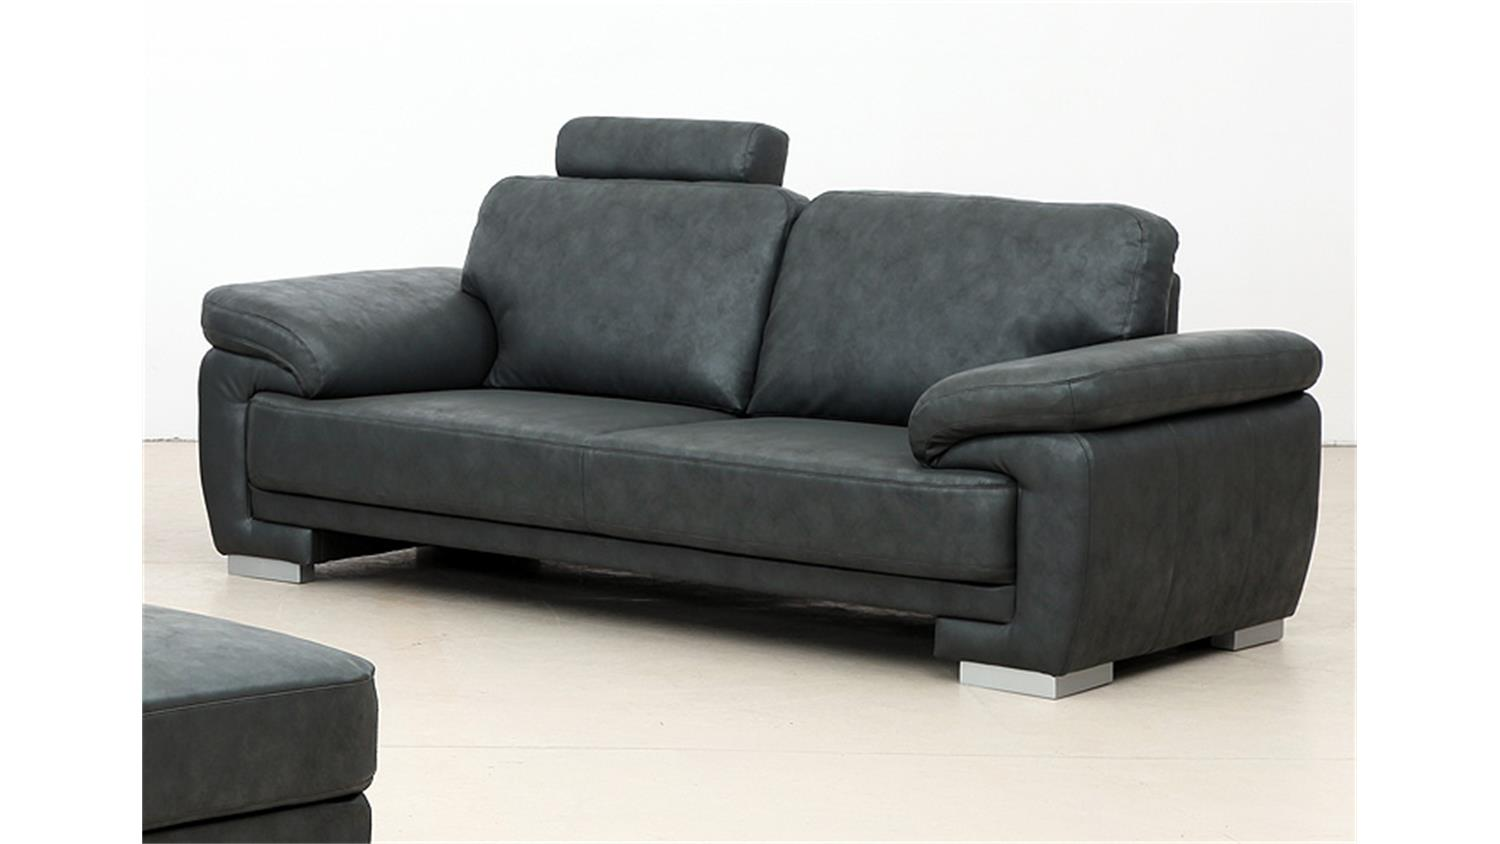 3 sitzer schlafsofa badezimmer schlafzimmer sessel. Black Bedroom Furniture Sets. Home Design Ideas